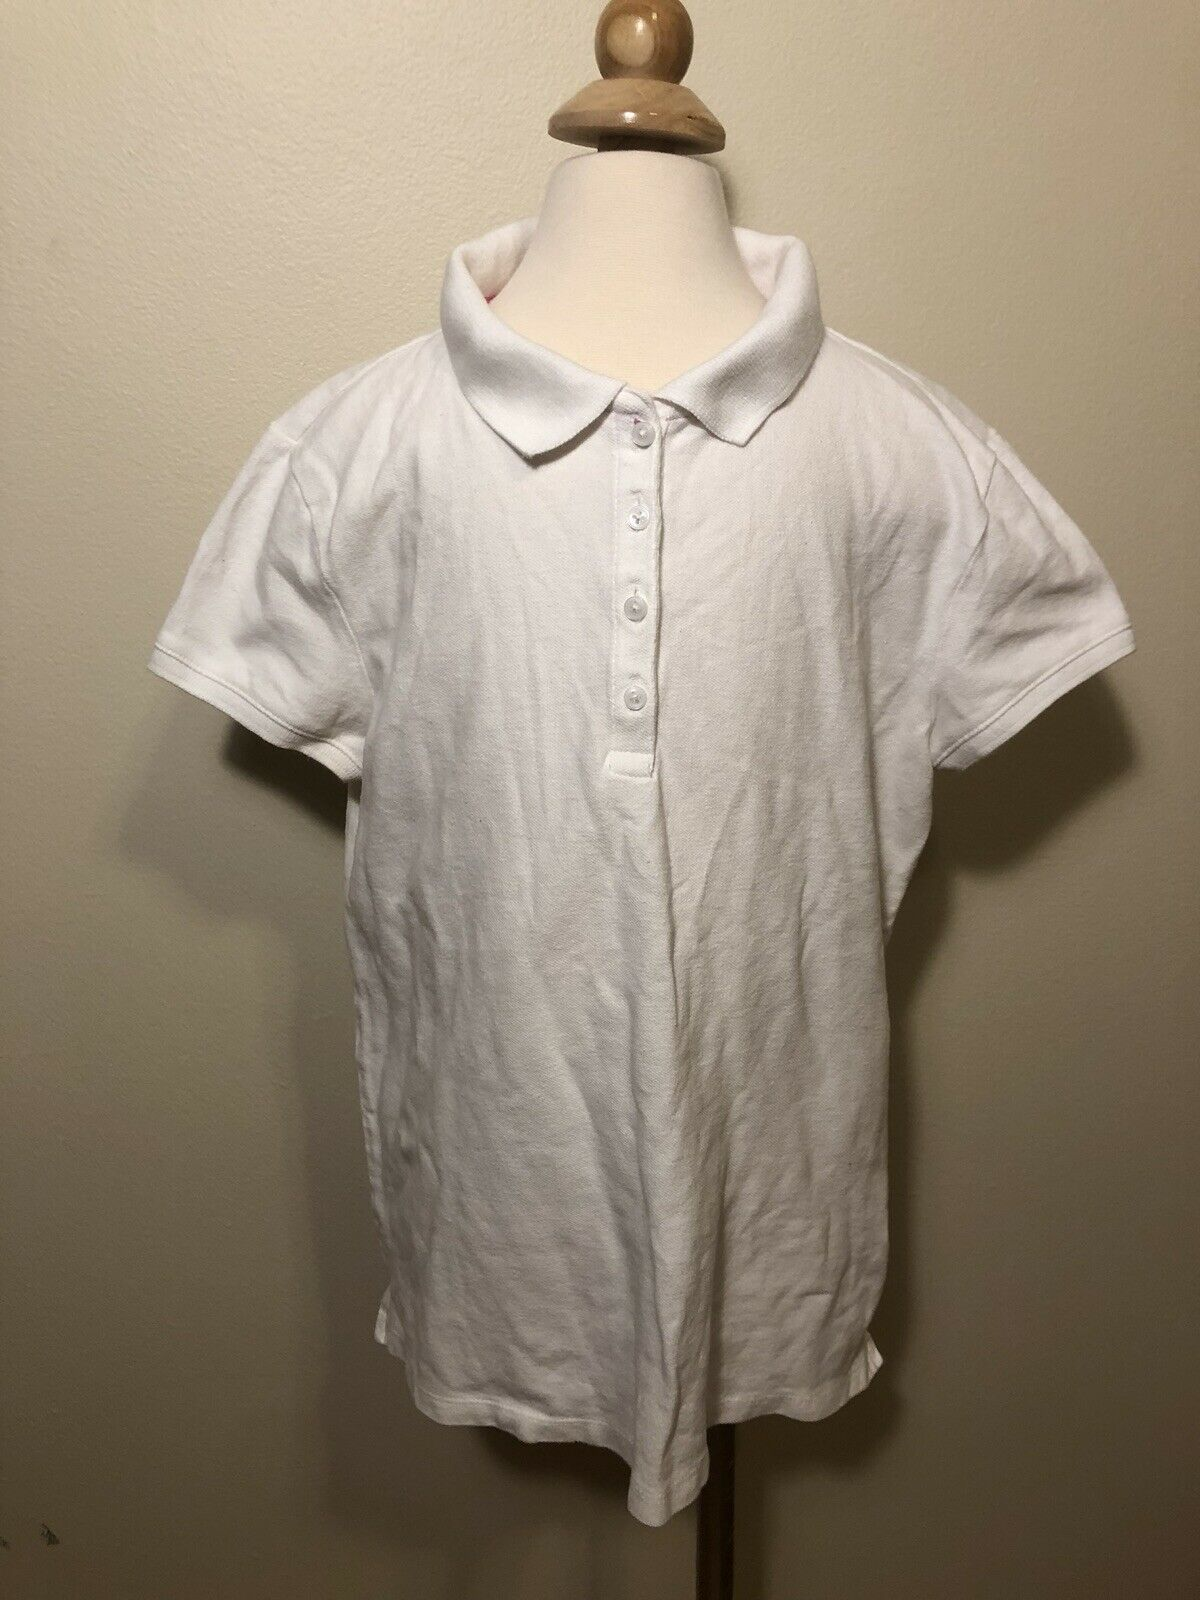 Gap Kids Girls Polo Shirt White Size Xxl(14-16)